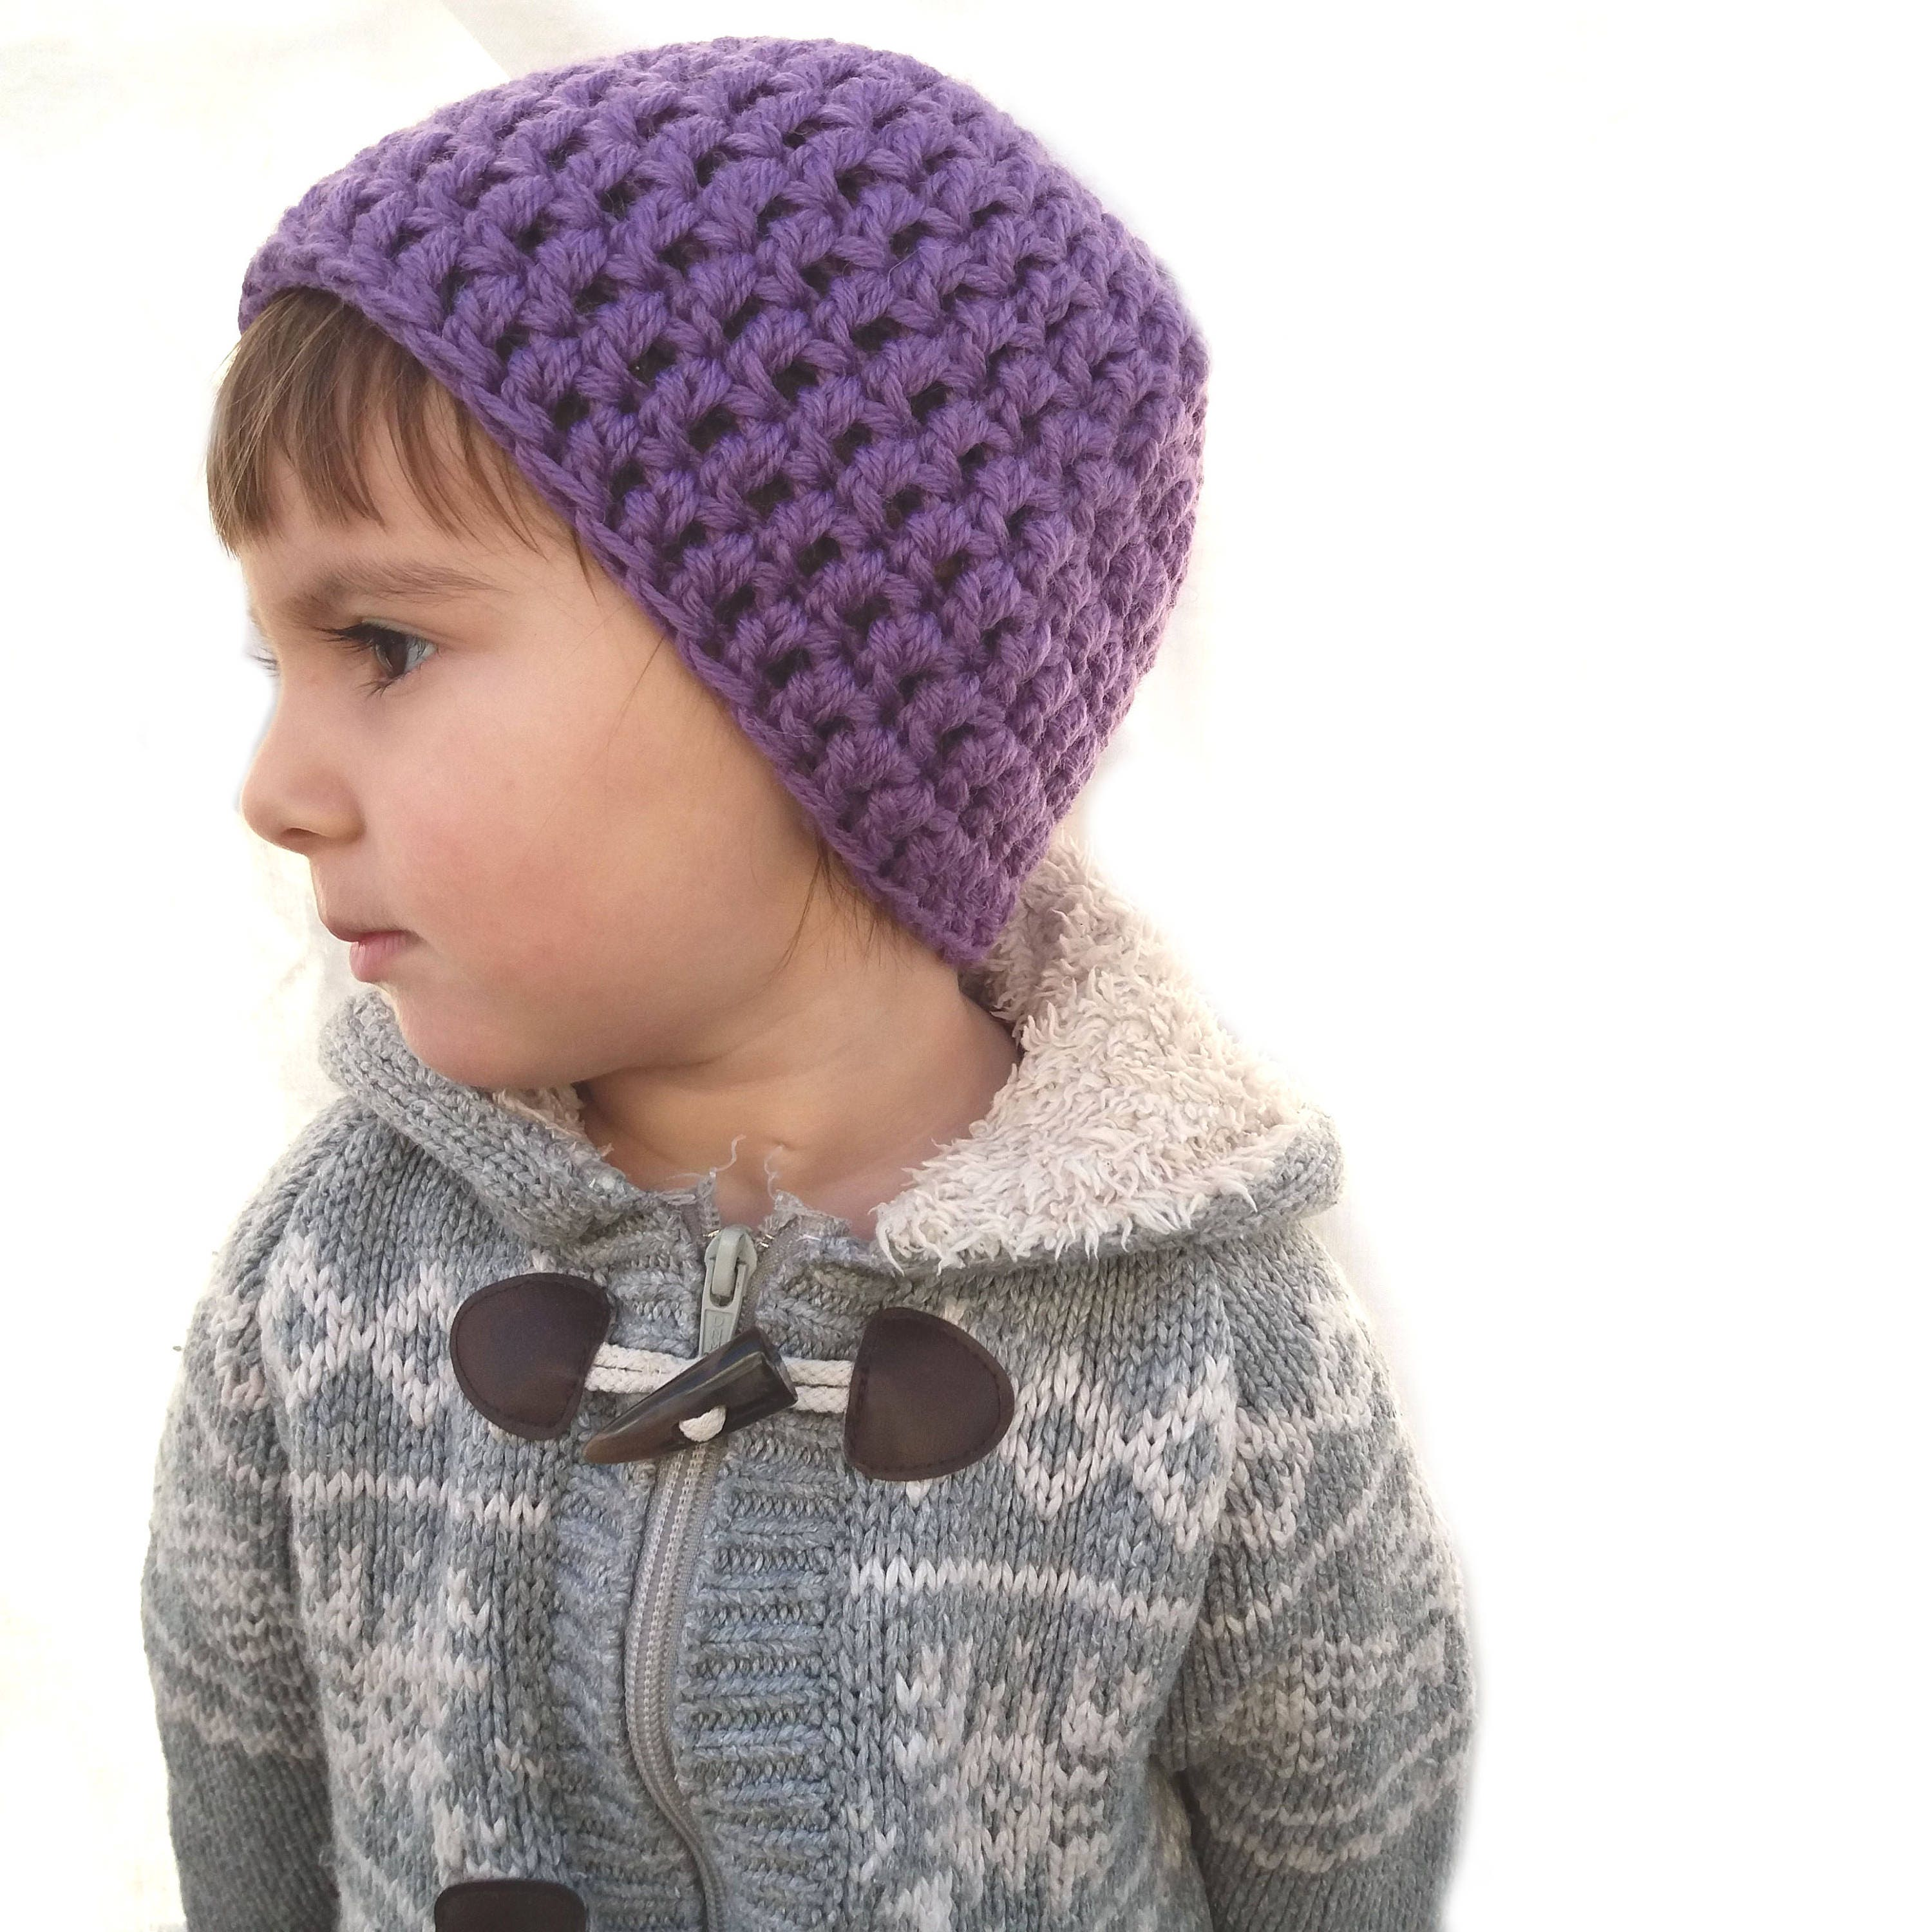 Eco gift ideas for toddlers Vibrant purple hat Wool Clothing  ec47a5285759